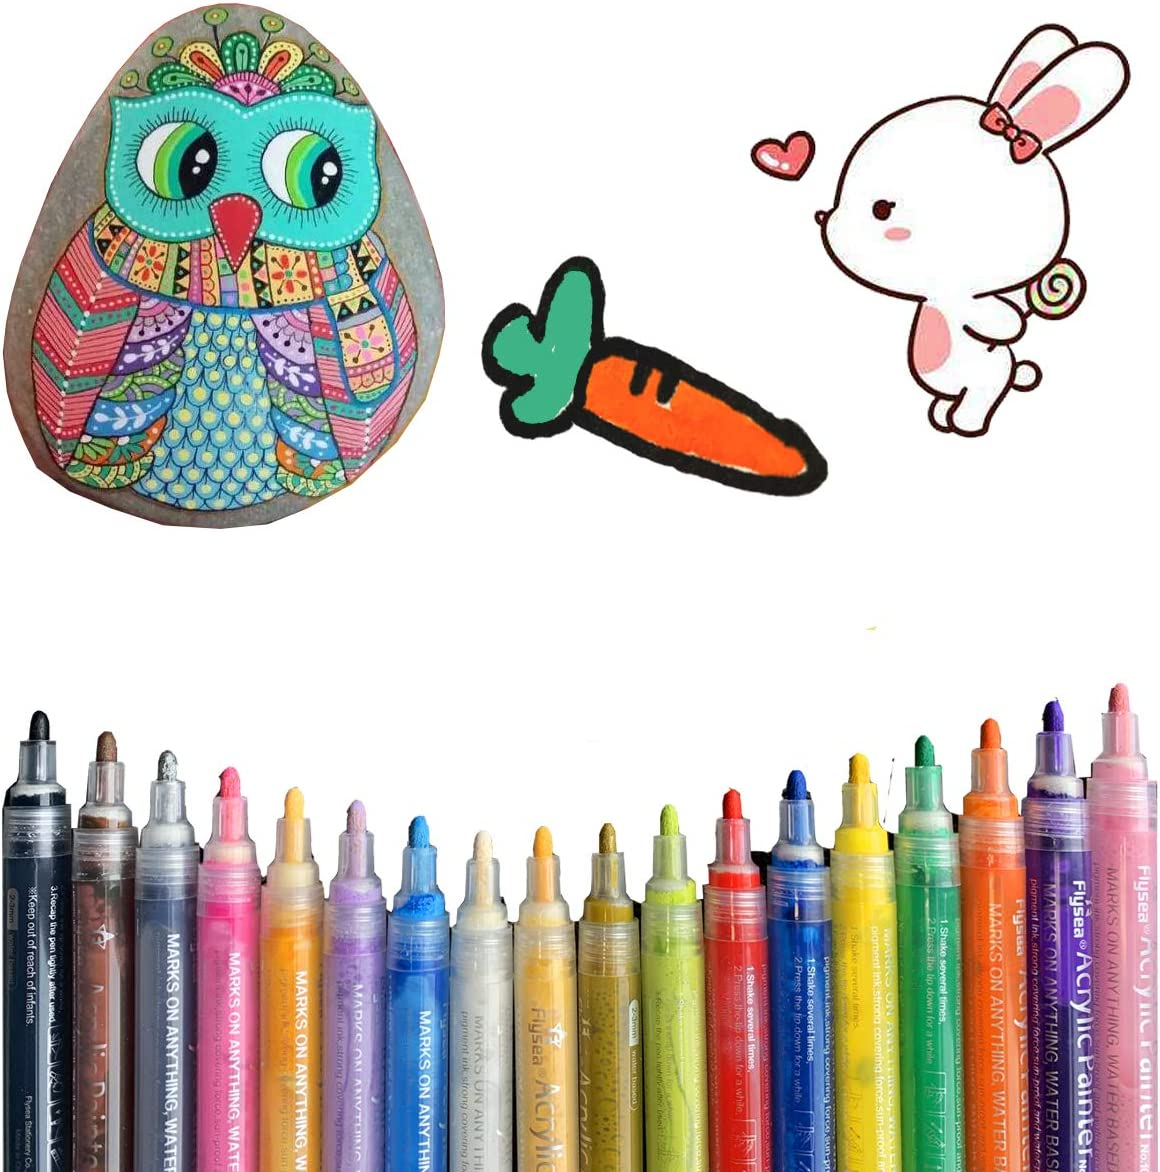 wood and Easter eggs Acrylic Paint Marker Pens cups for painting stones glass ceramics 18 Colors canvas waterproof acrylic paint marker set non-toxic